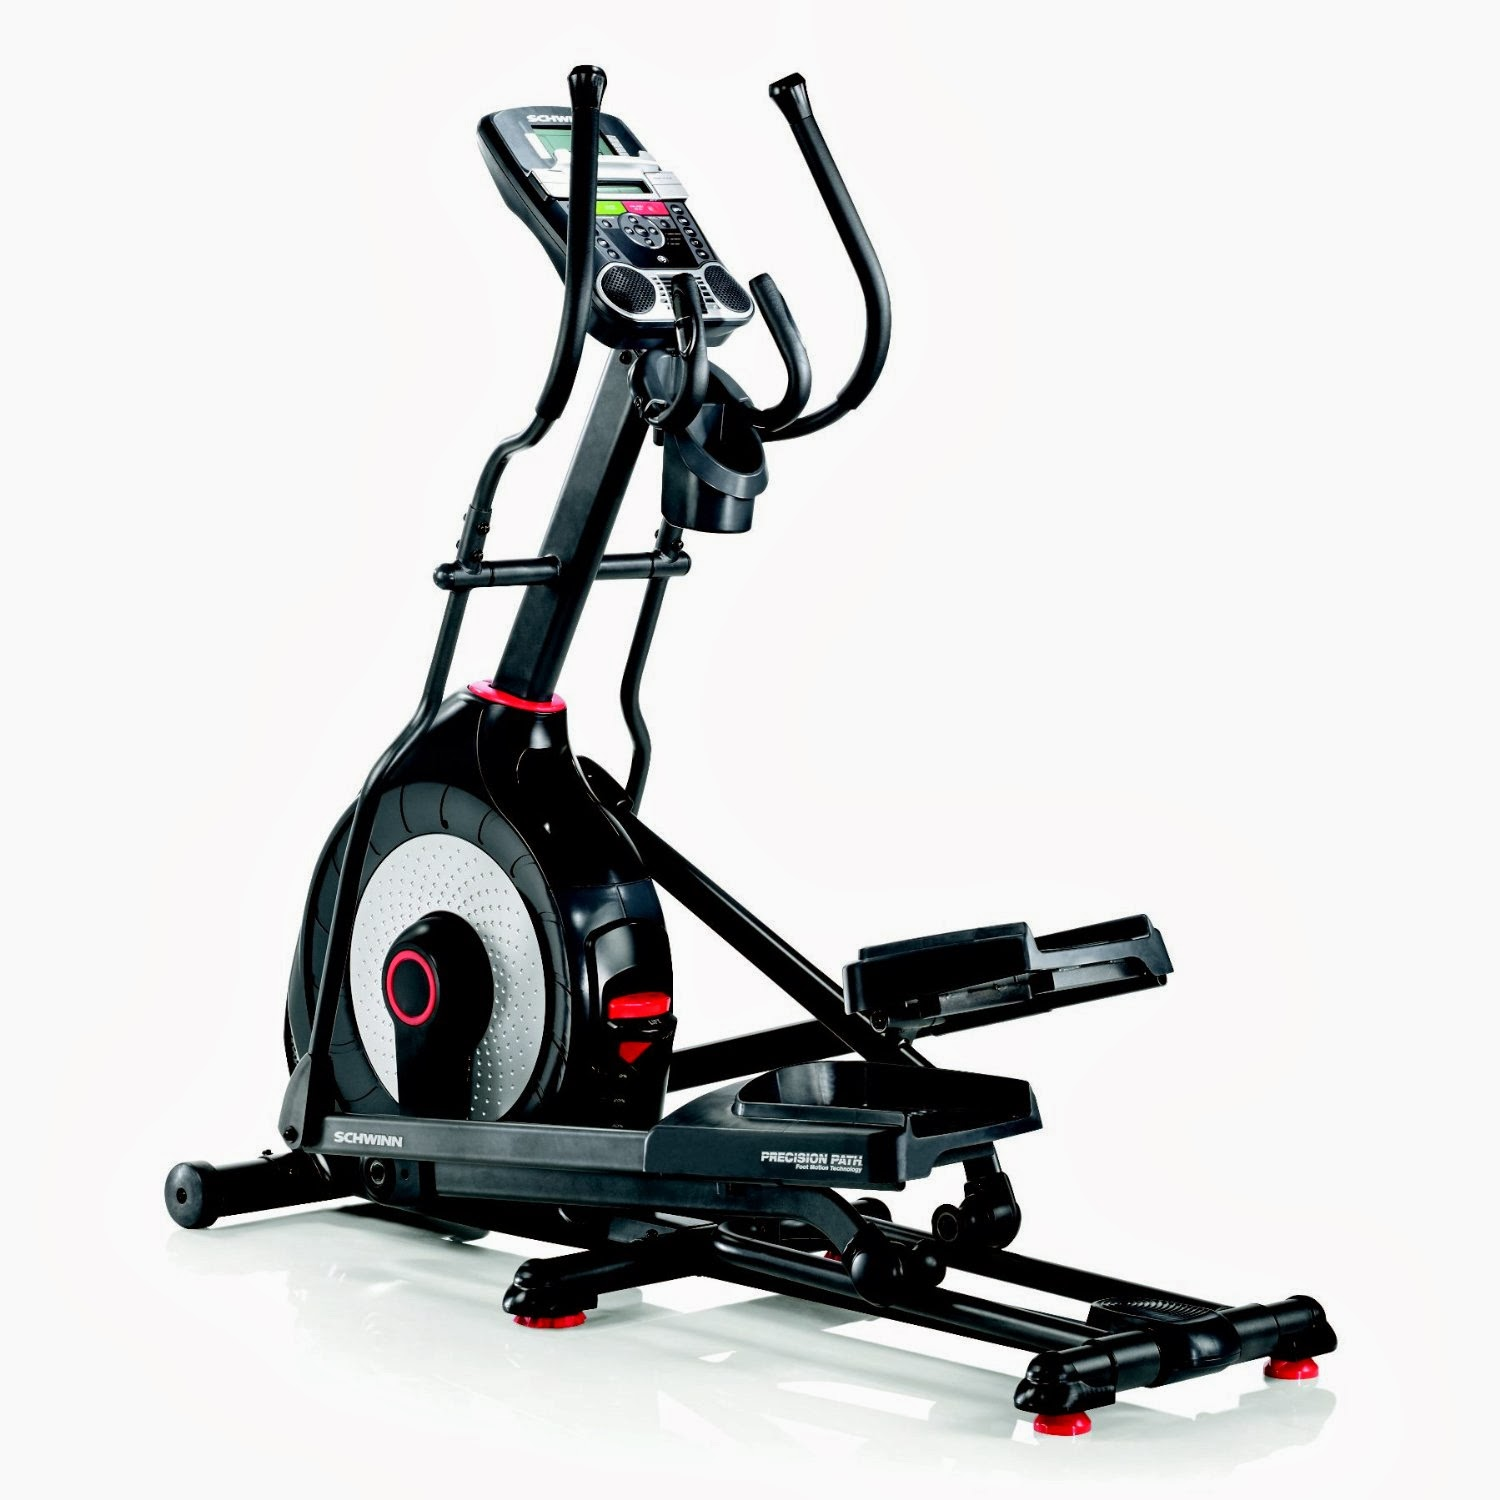 Home Exercise Equipment Price: Health And Fitness Den: Schwinn 470 Versus Sole E95